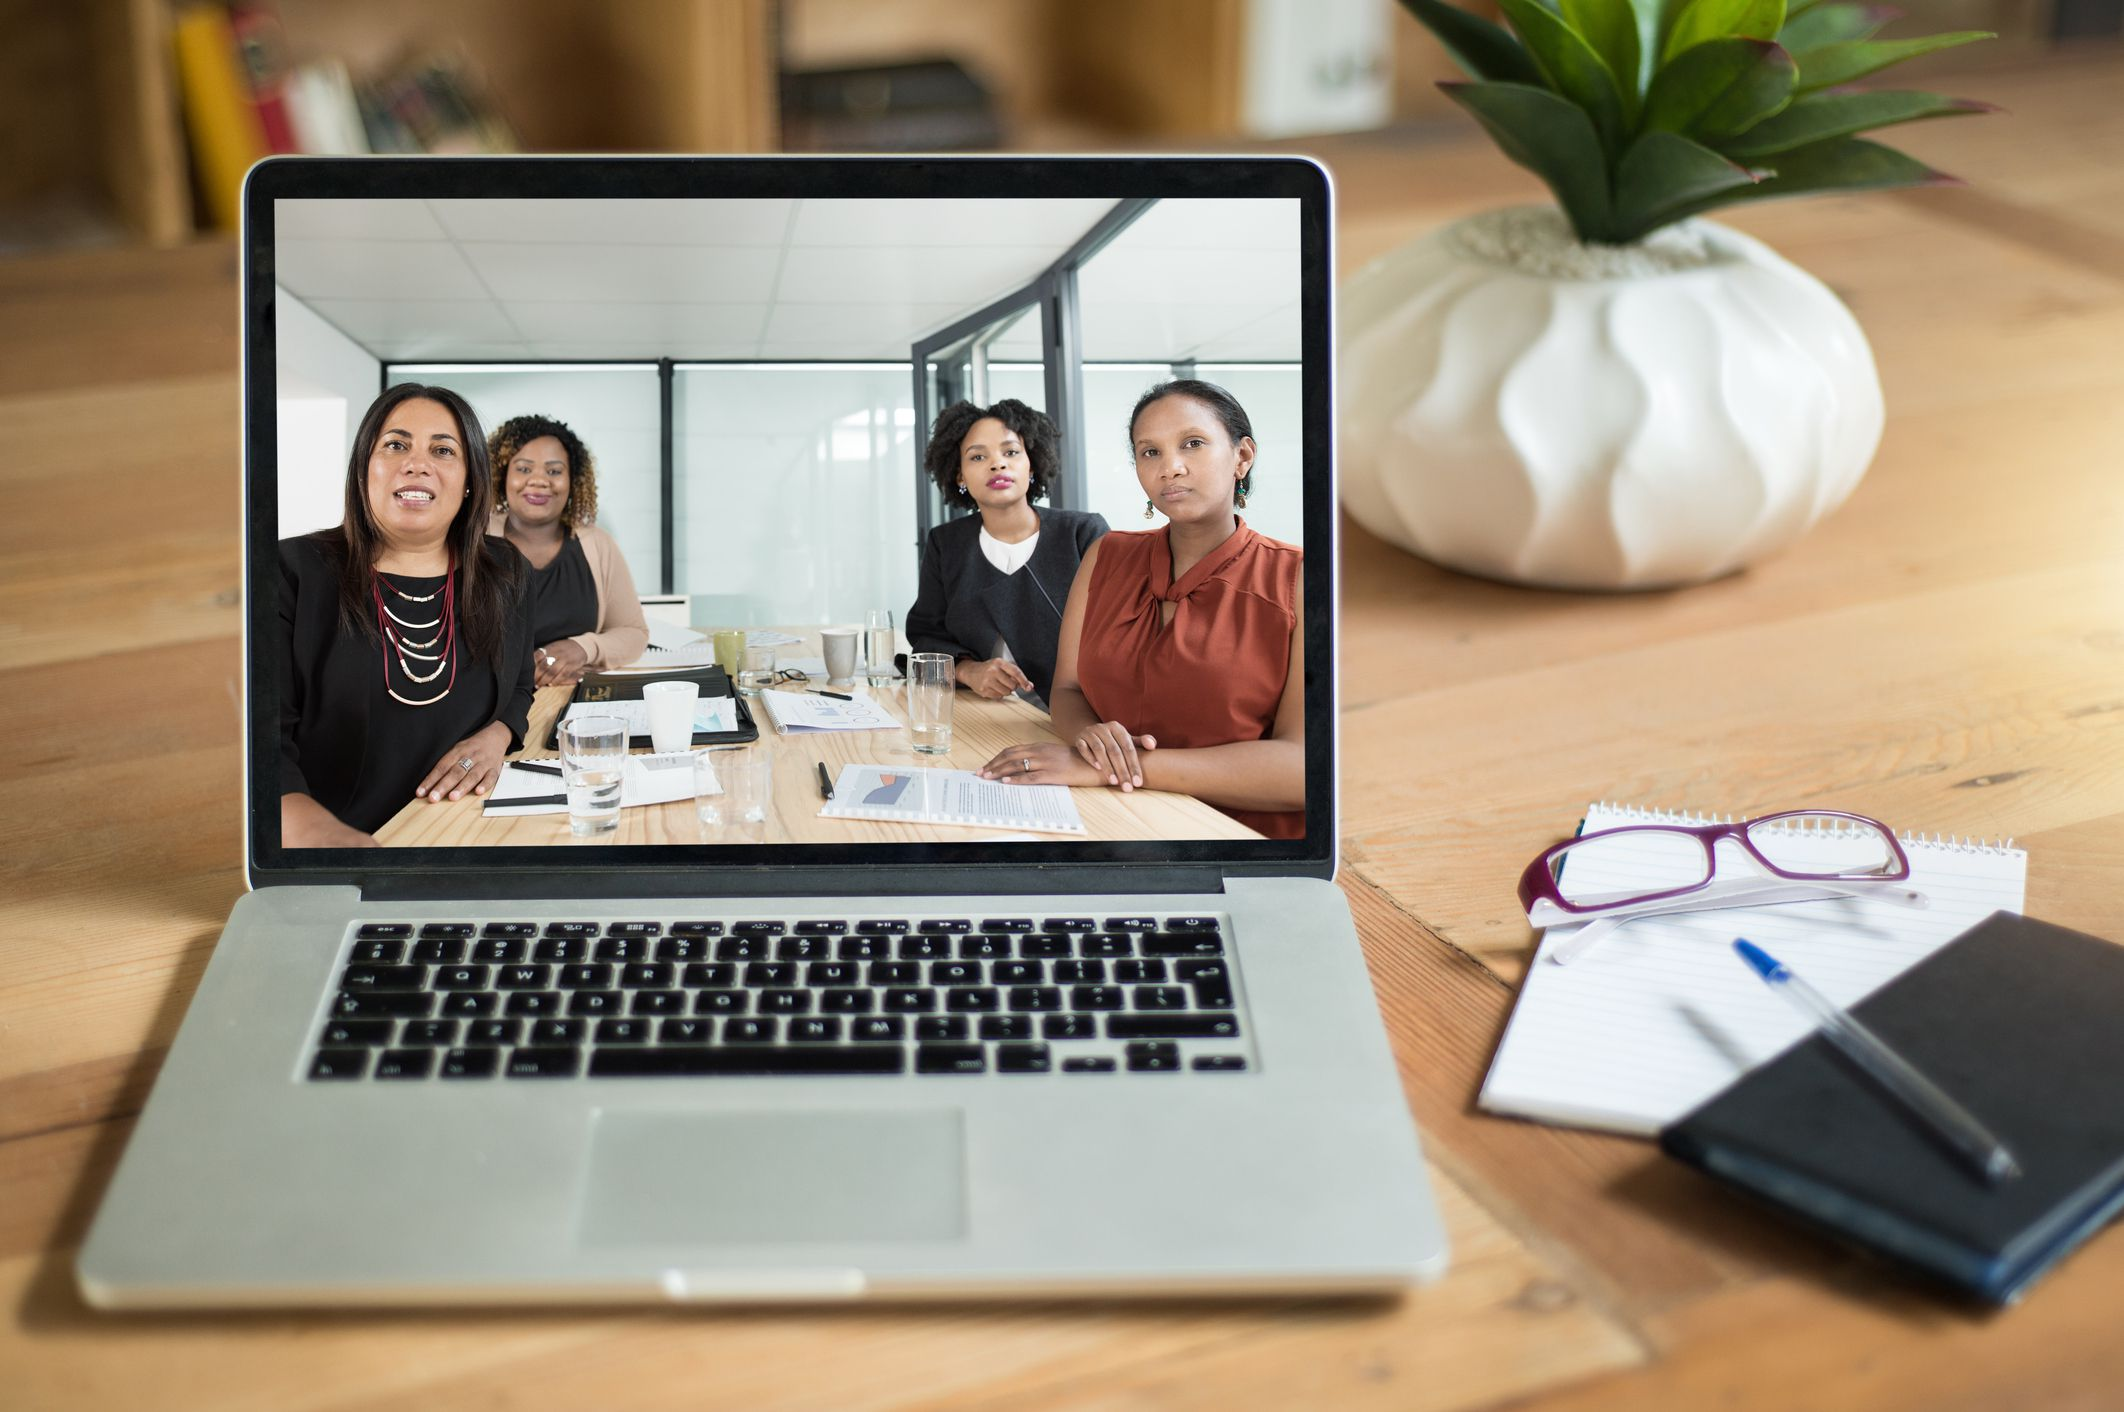 How To Set Up and Join a Zoom Meeting